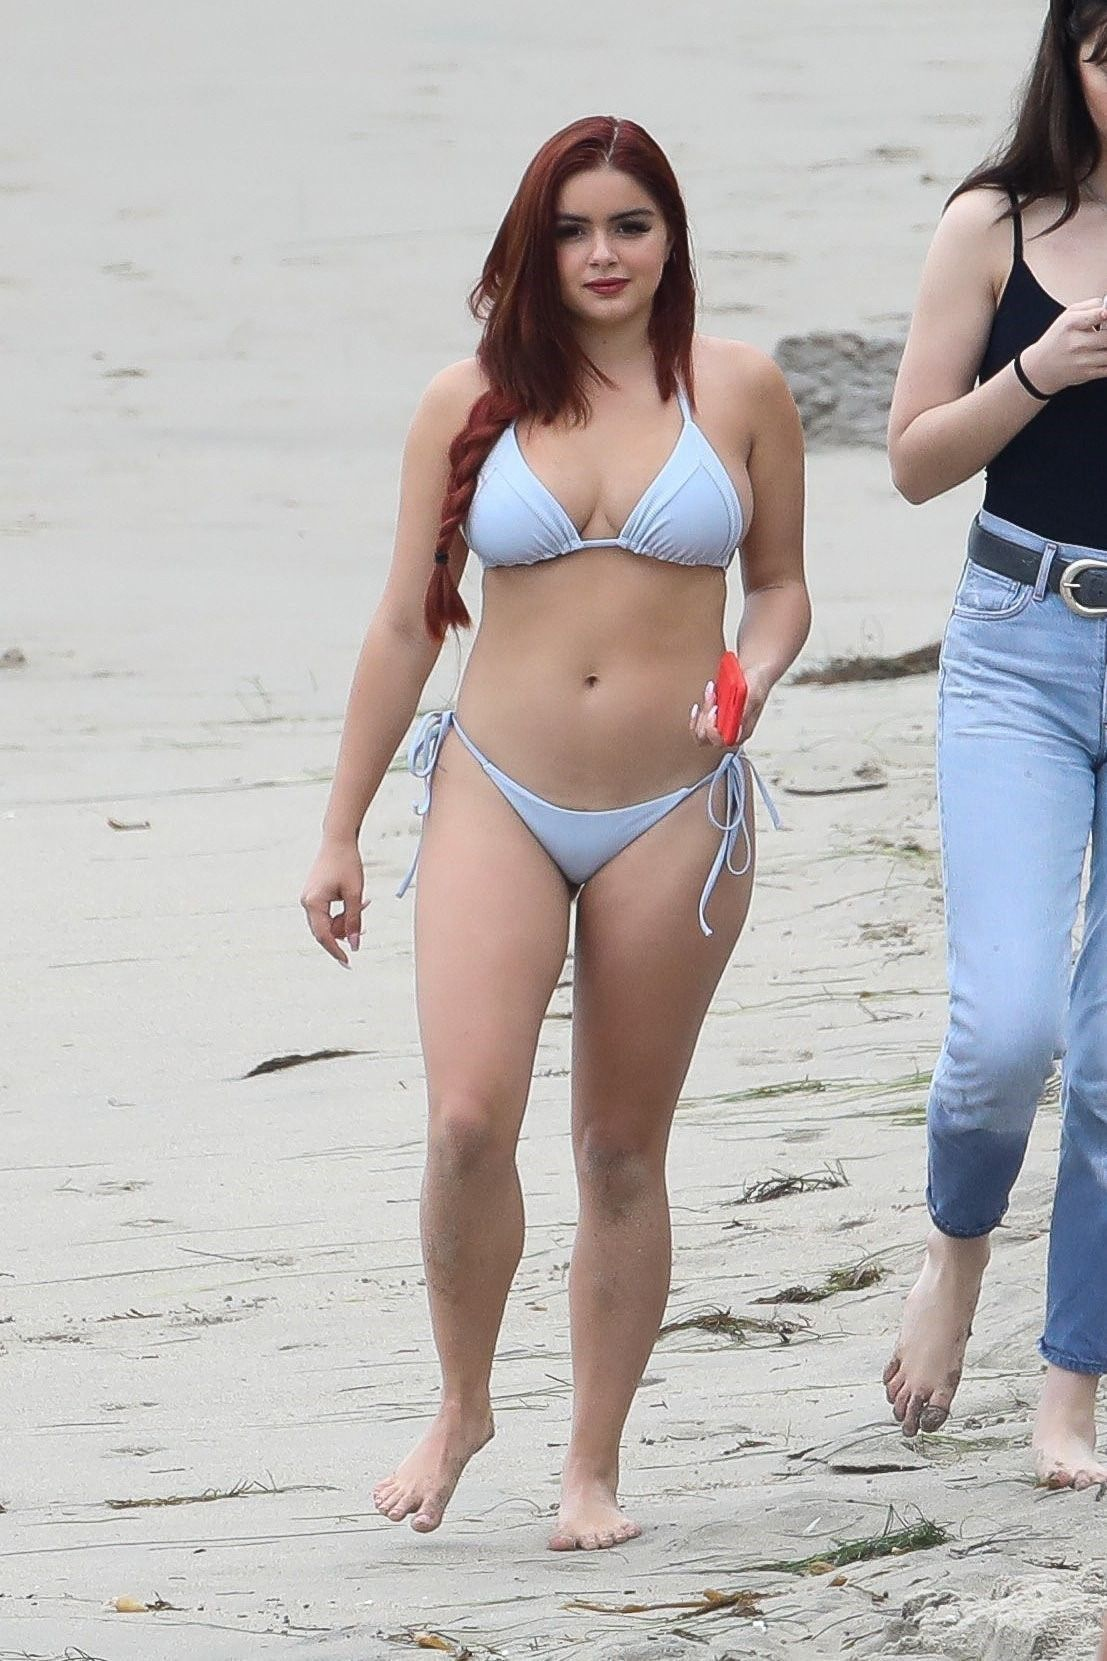 Ariel winter ariel winter pinterest ariel winter ariel and